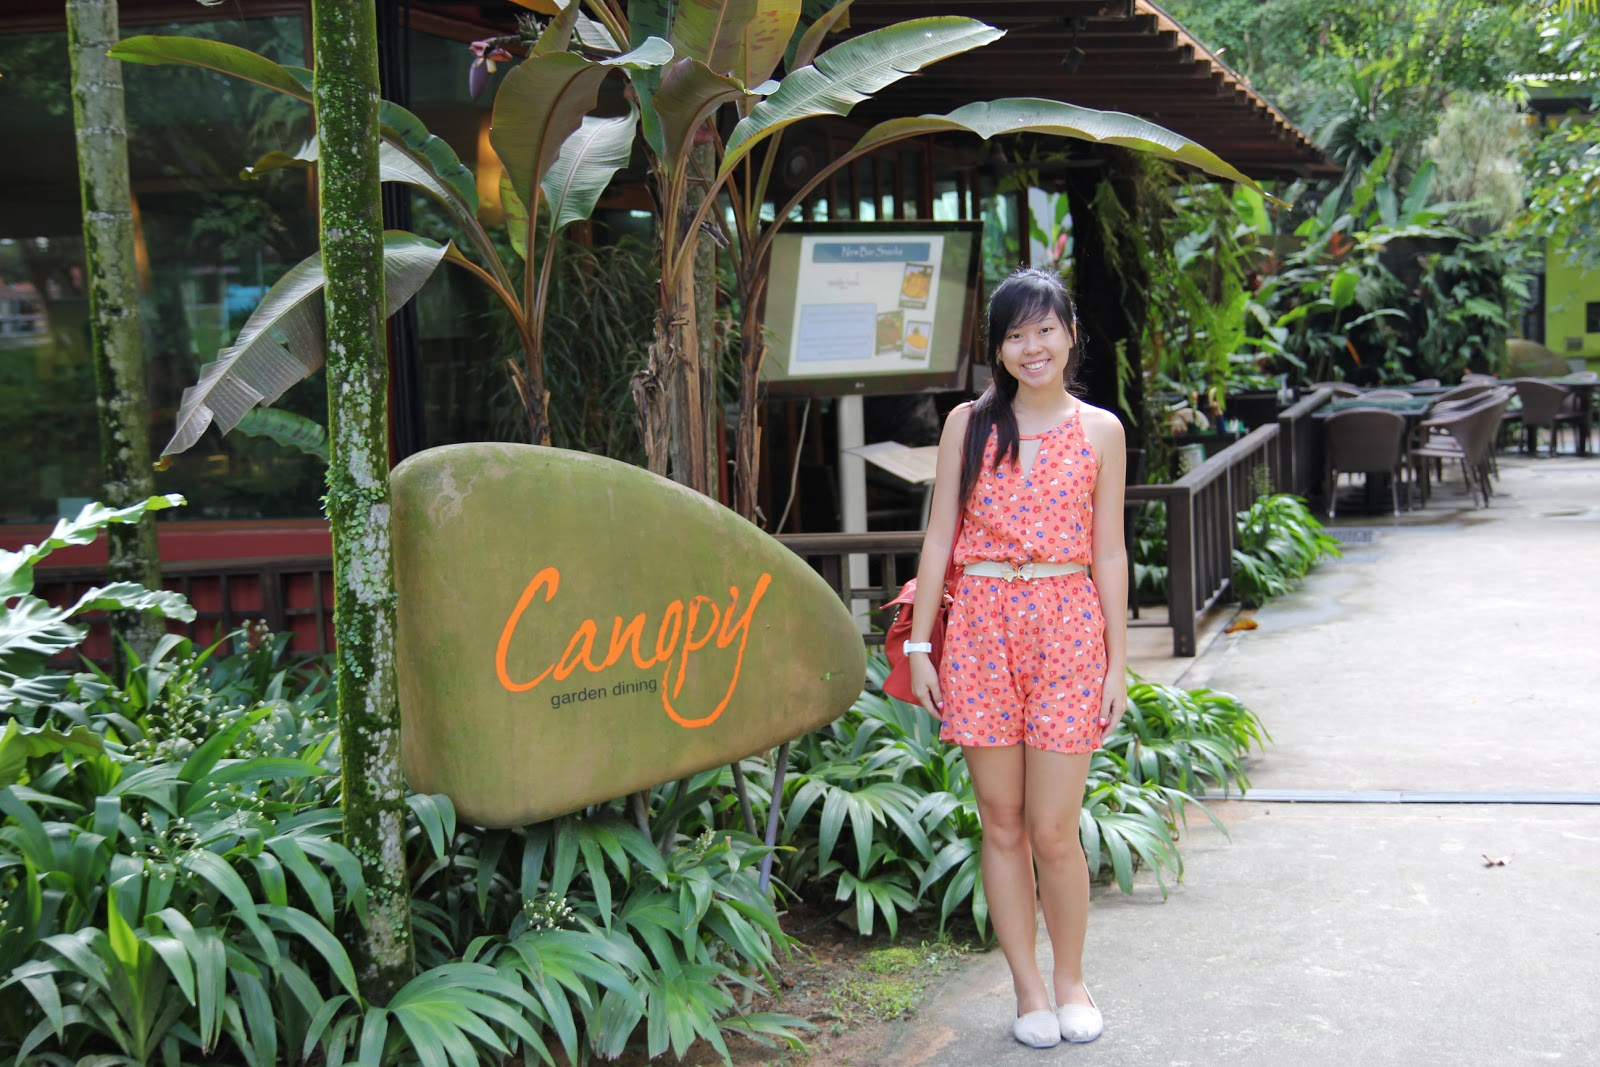 The outdoors of the dining garden.  sc 1 st  Celine Chiam & Canopy Dining Garden u0026 Bar Review - Celine Chiam | Singapore ...